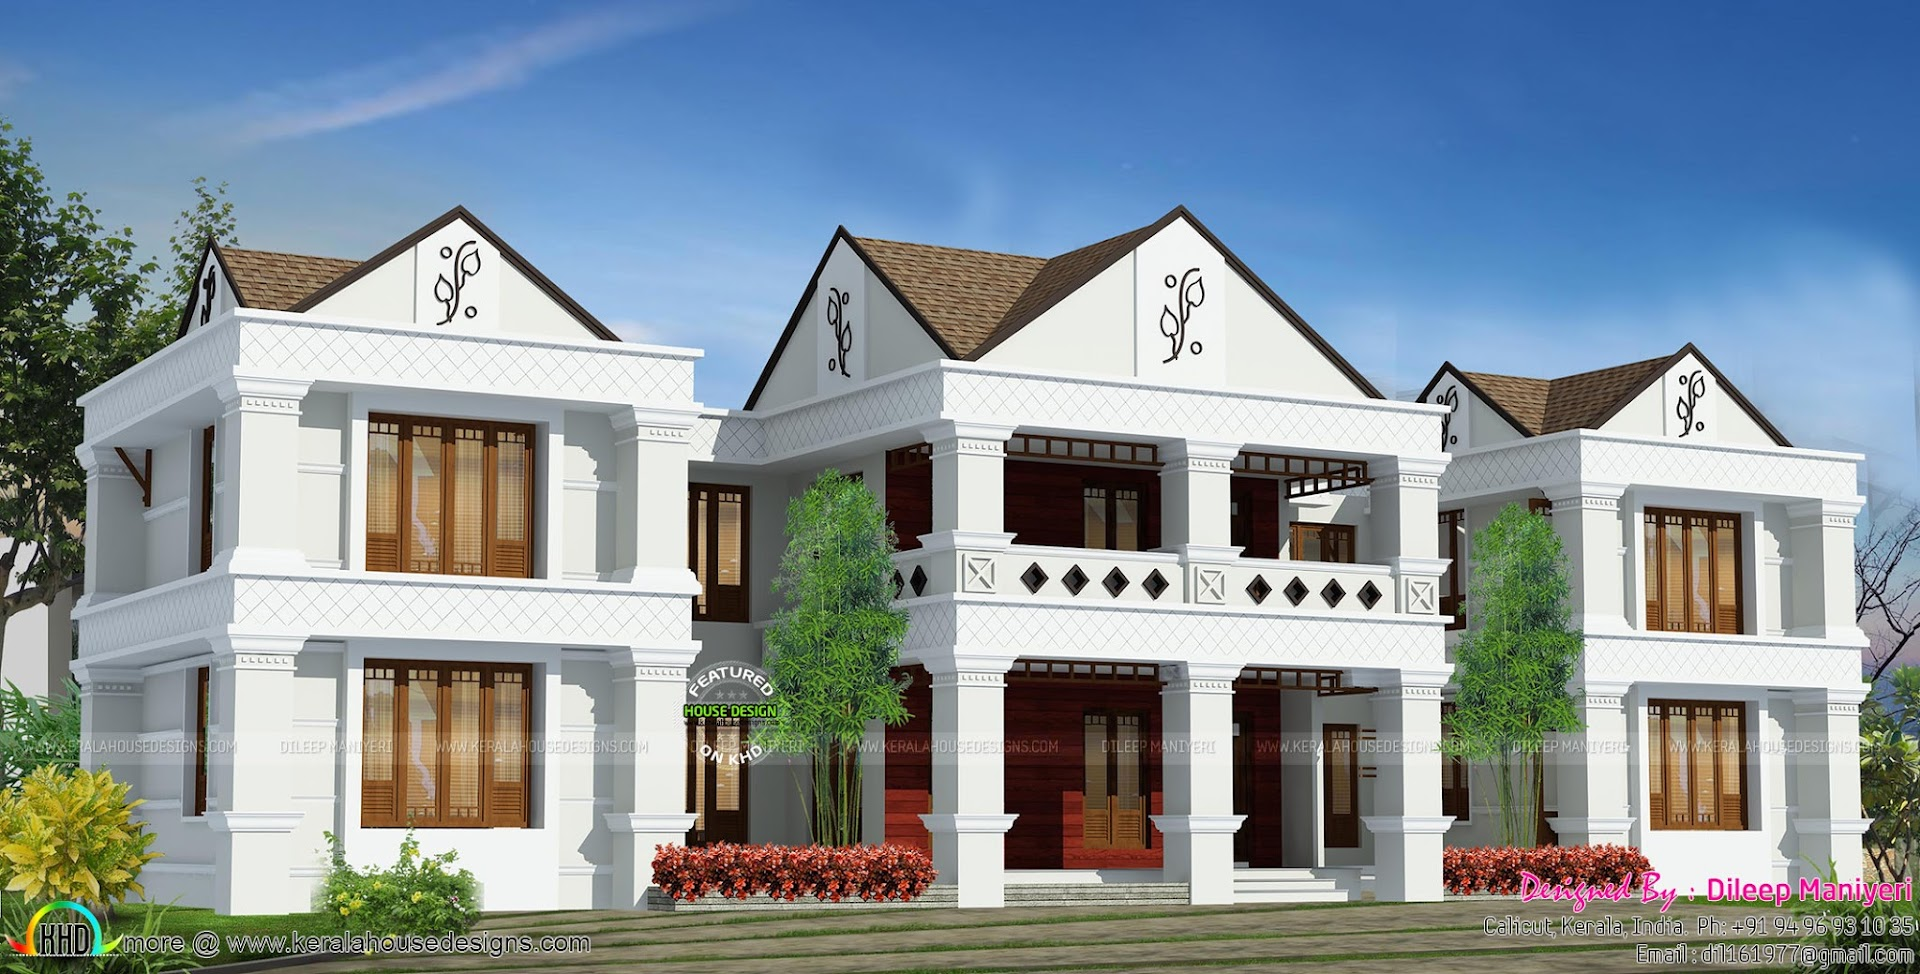 Arabic style house plan in india kerala home design and for Arabic home design